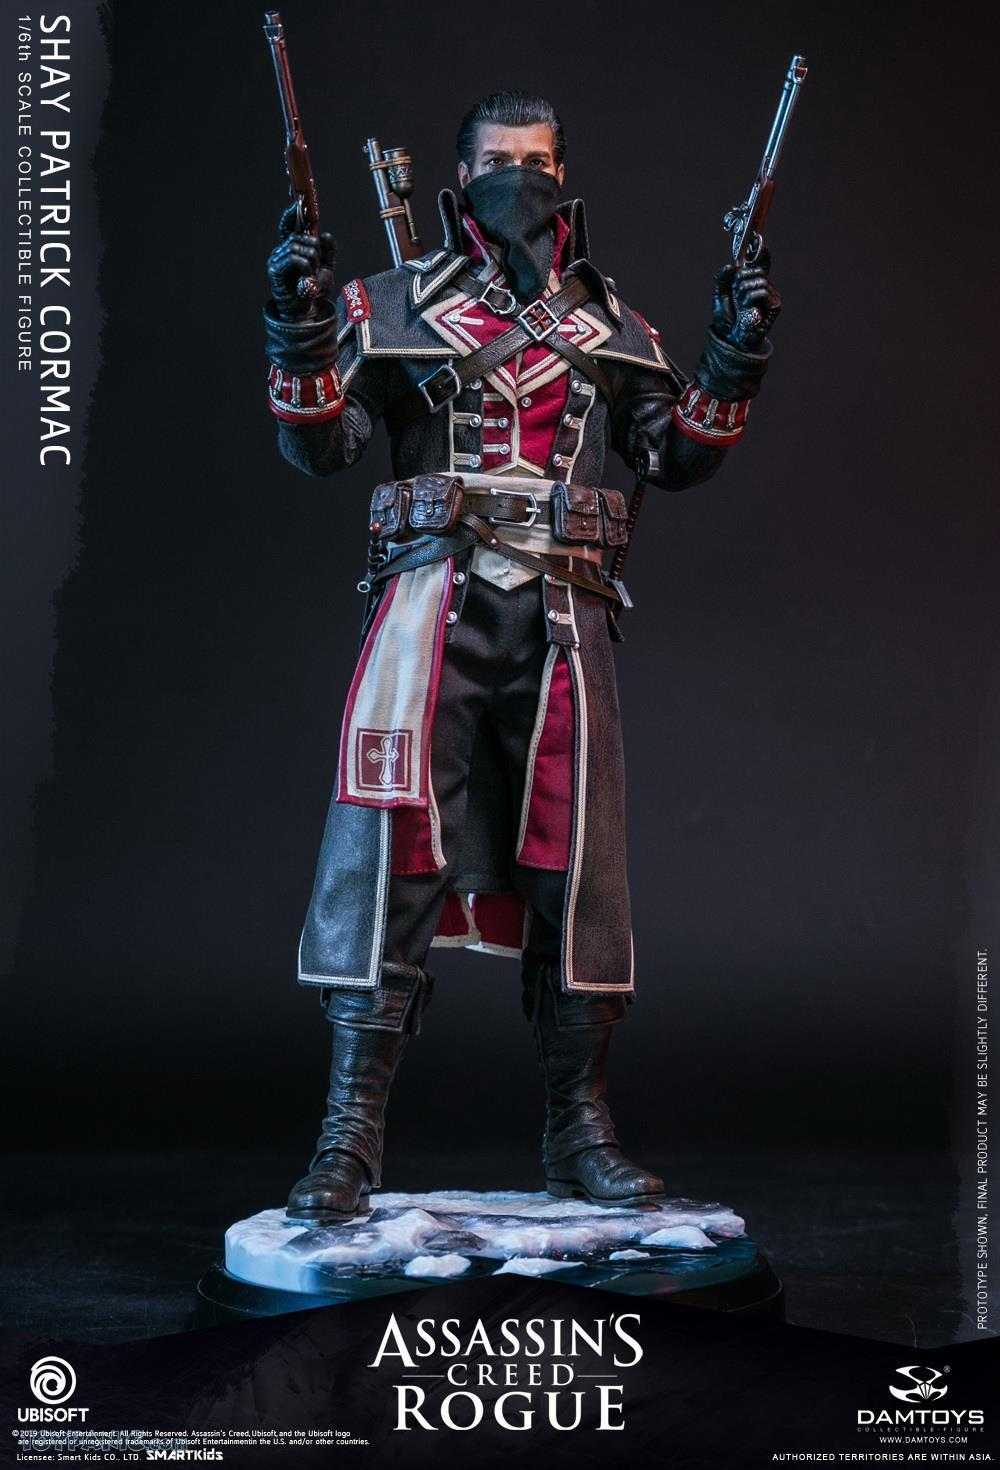 male - NEW PRODUCT: DAMTOYS: Assassins Creed Rogue - 1/6th scale Shay Patrick Cormac Collectible Figure 82220119